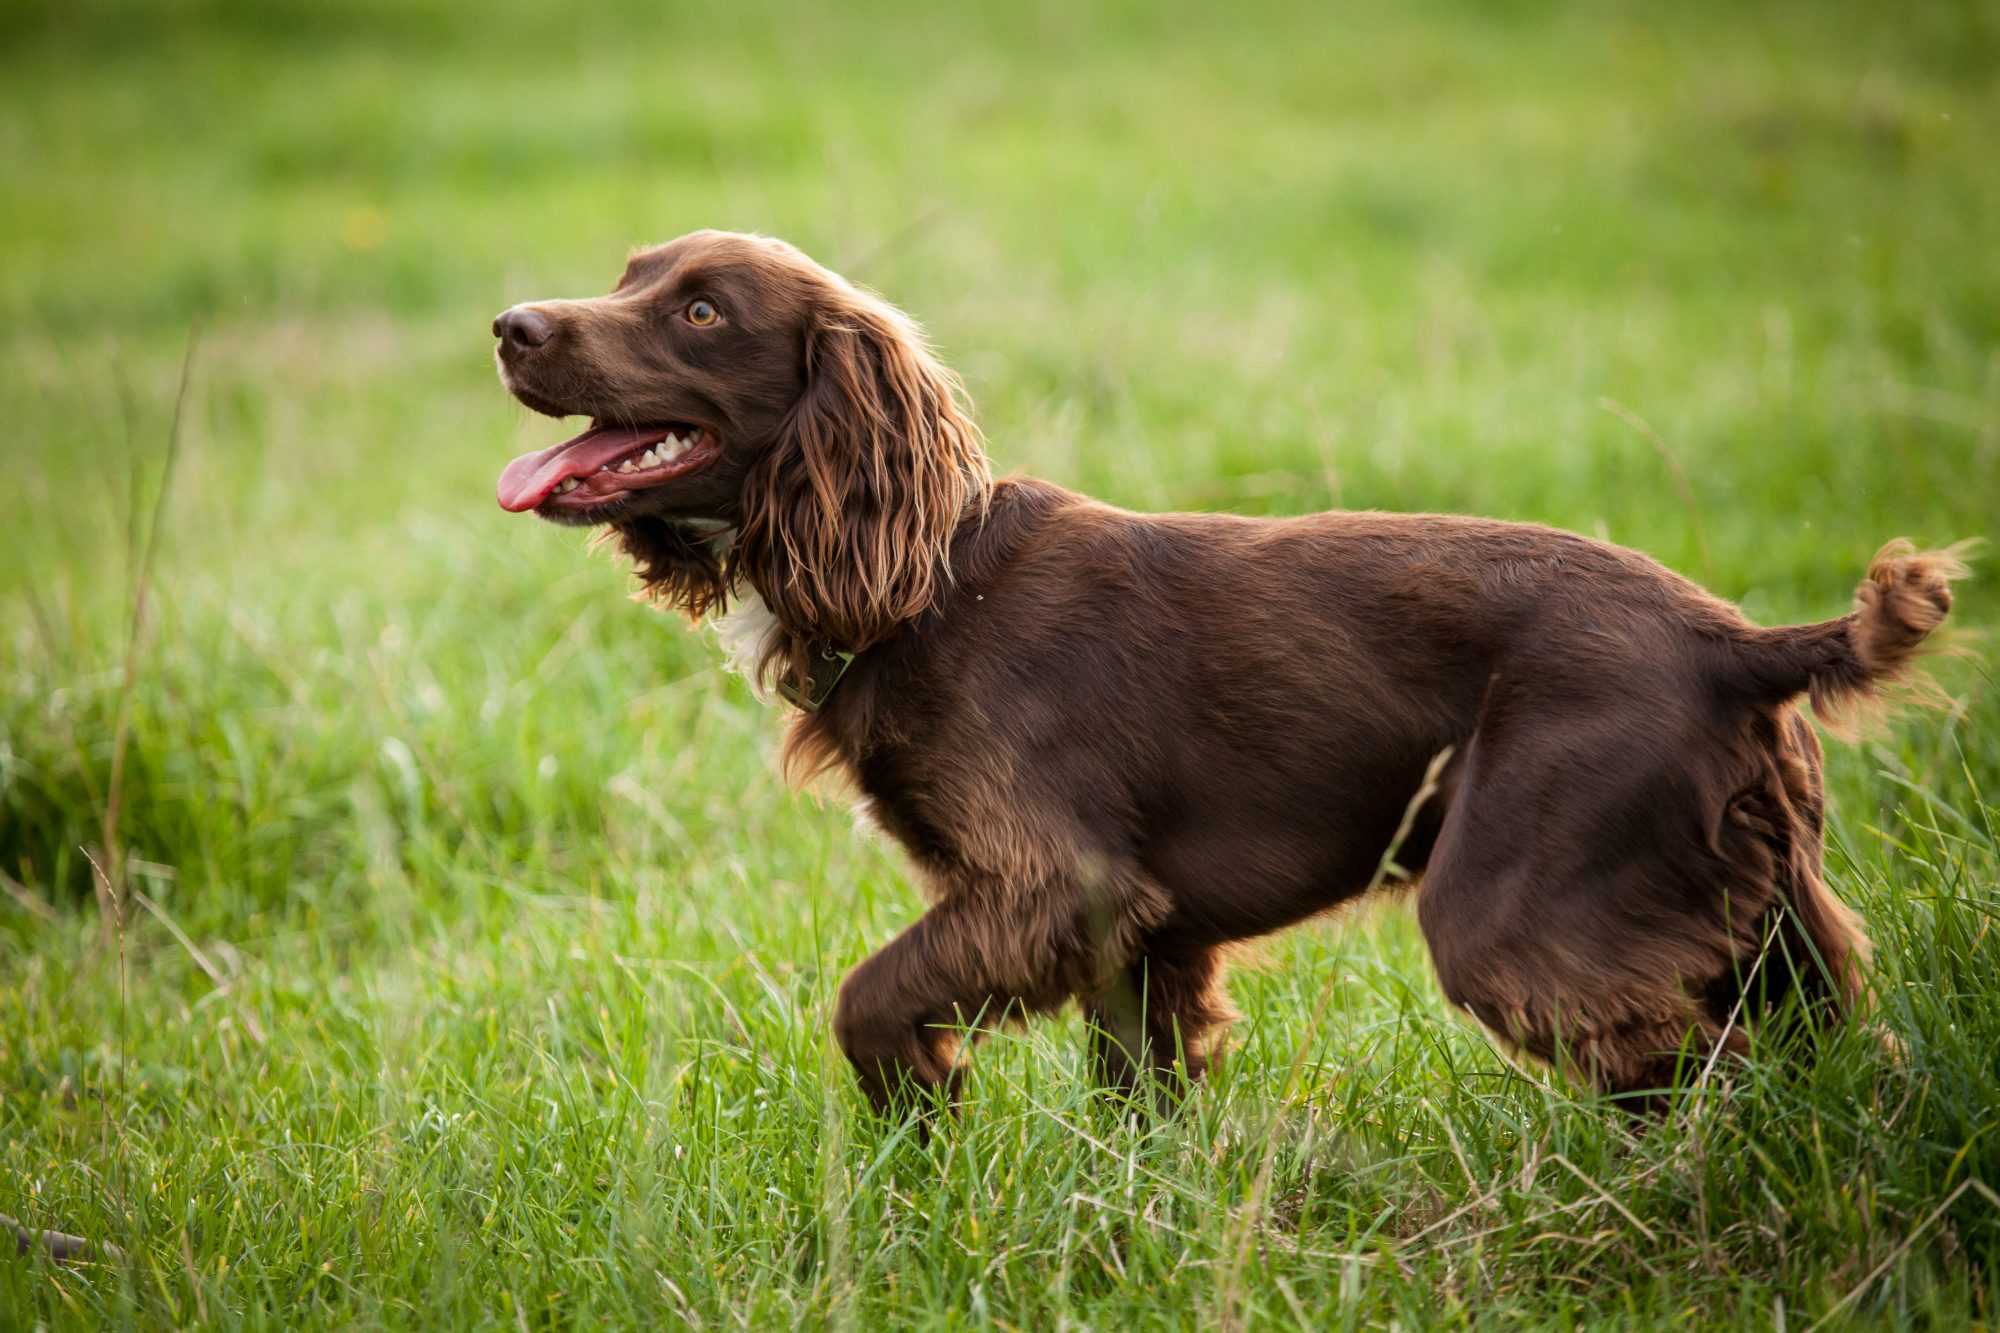 boykin spaniel in tall grass